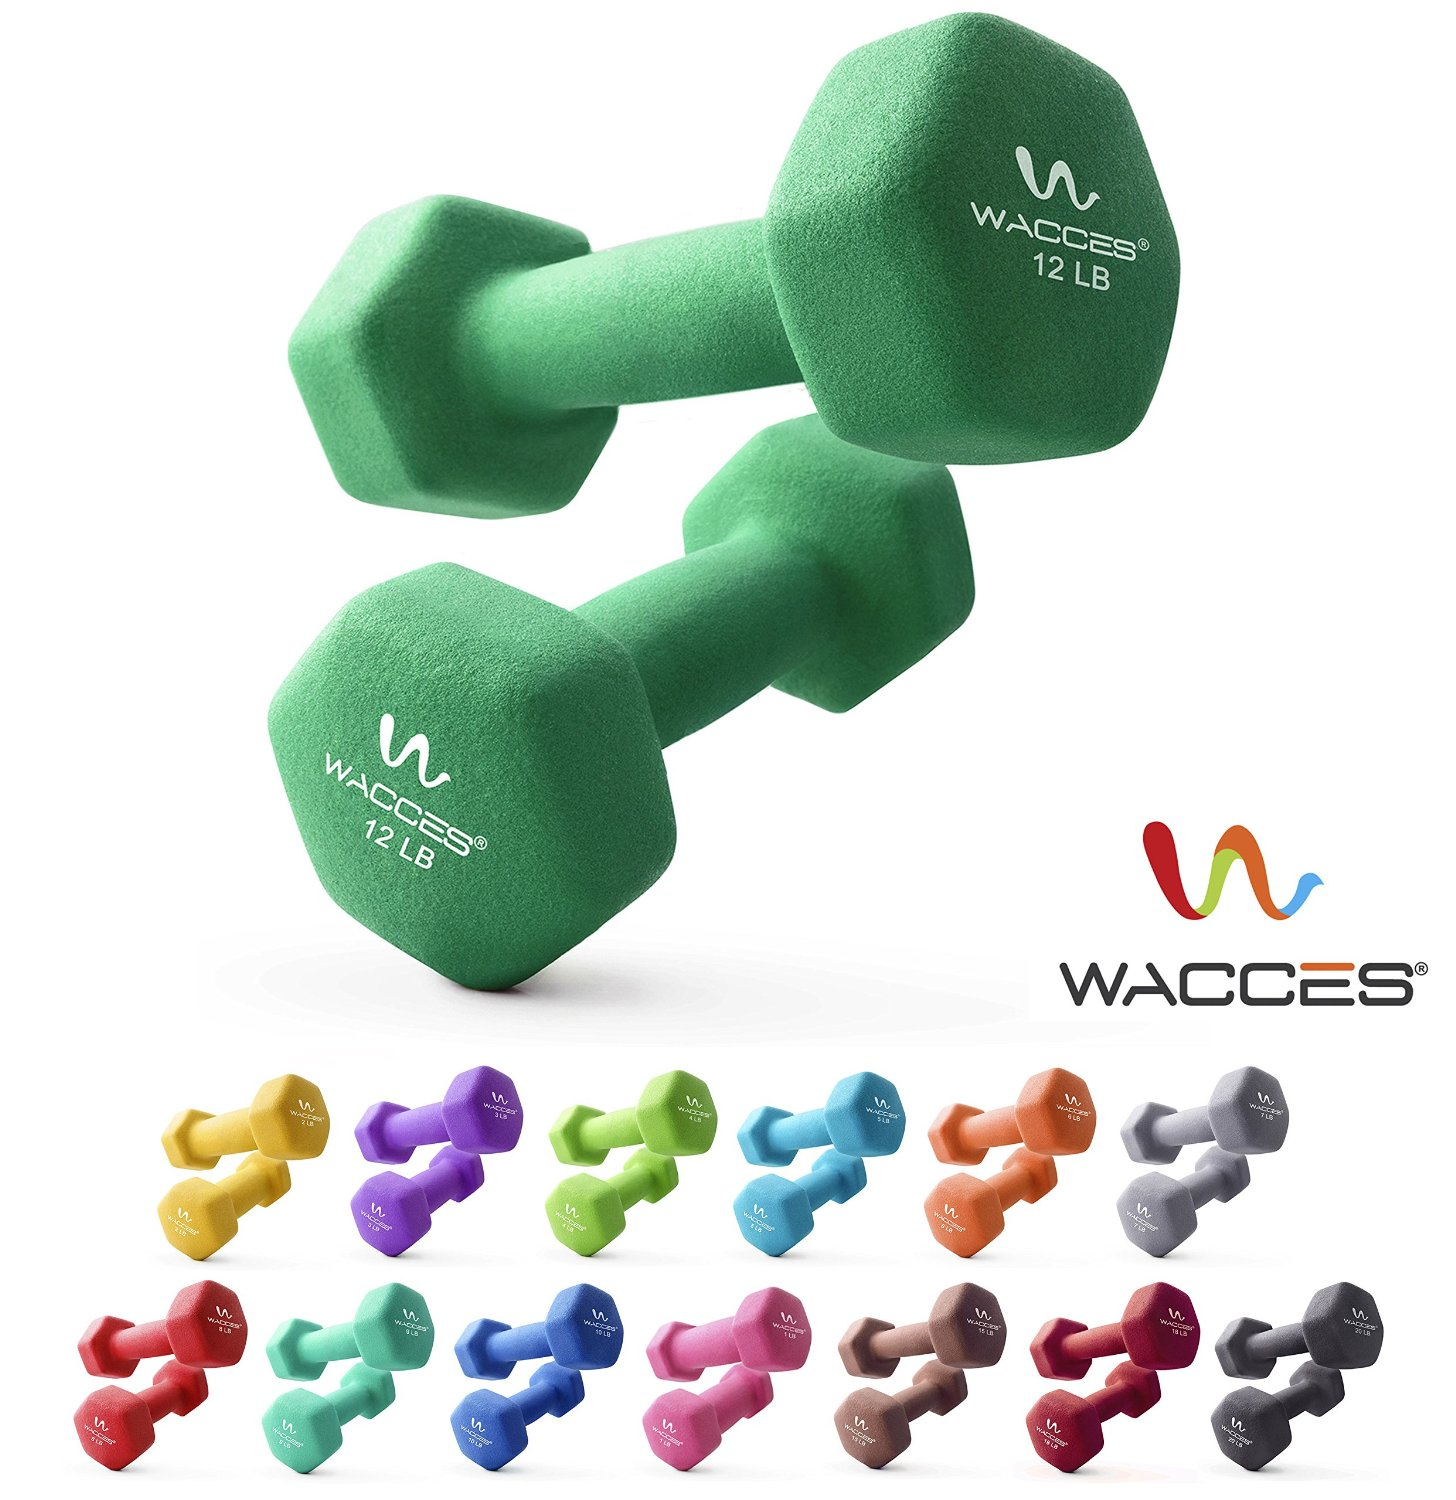 Wacces Neoprene Dipped Coated Set of 2 Dumbbells Hand Weights Sets